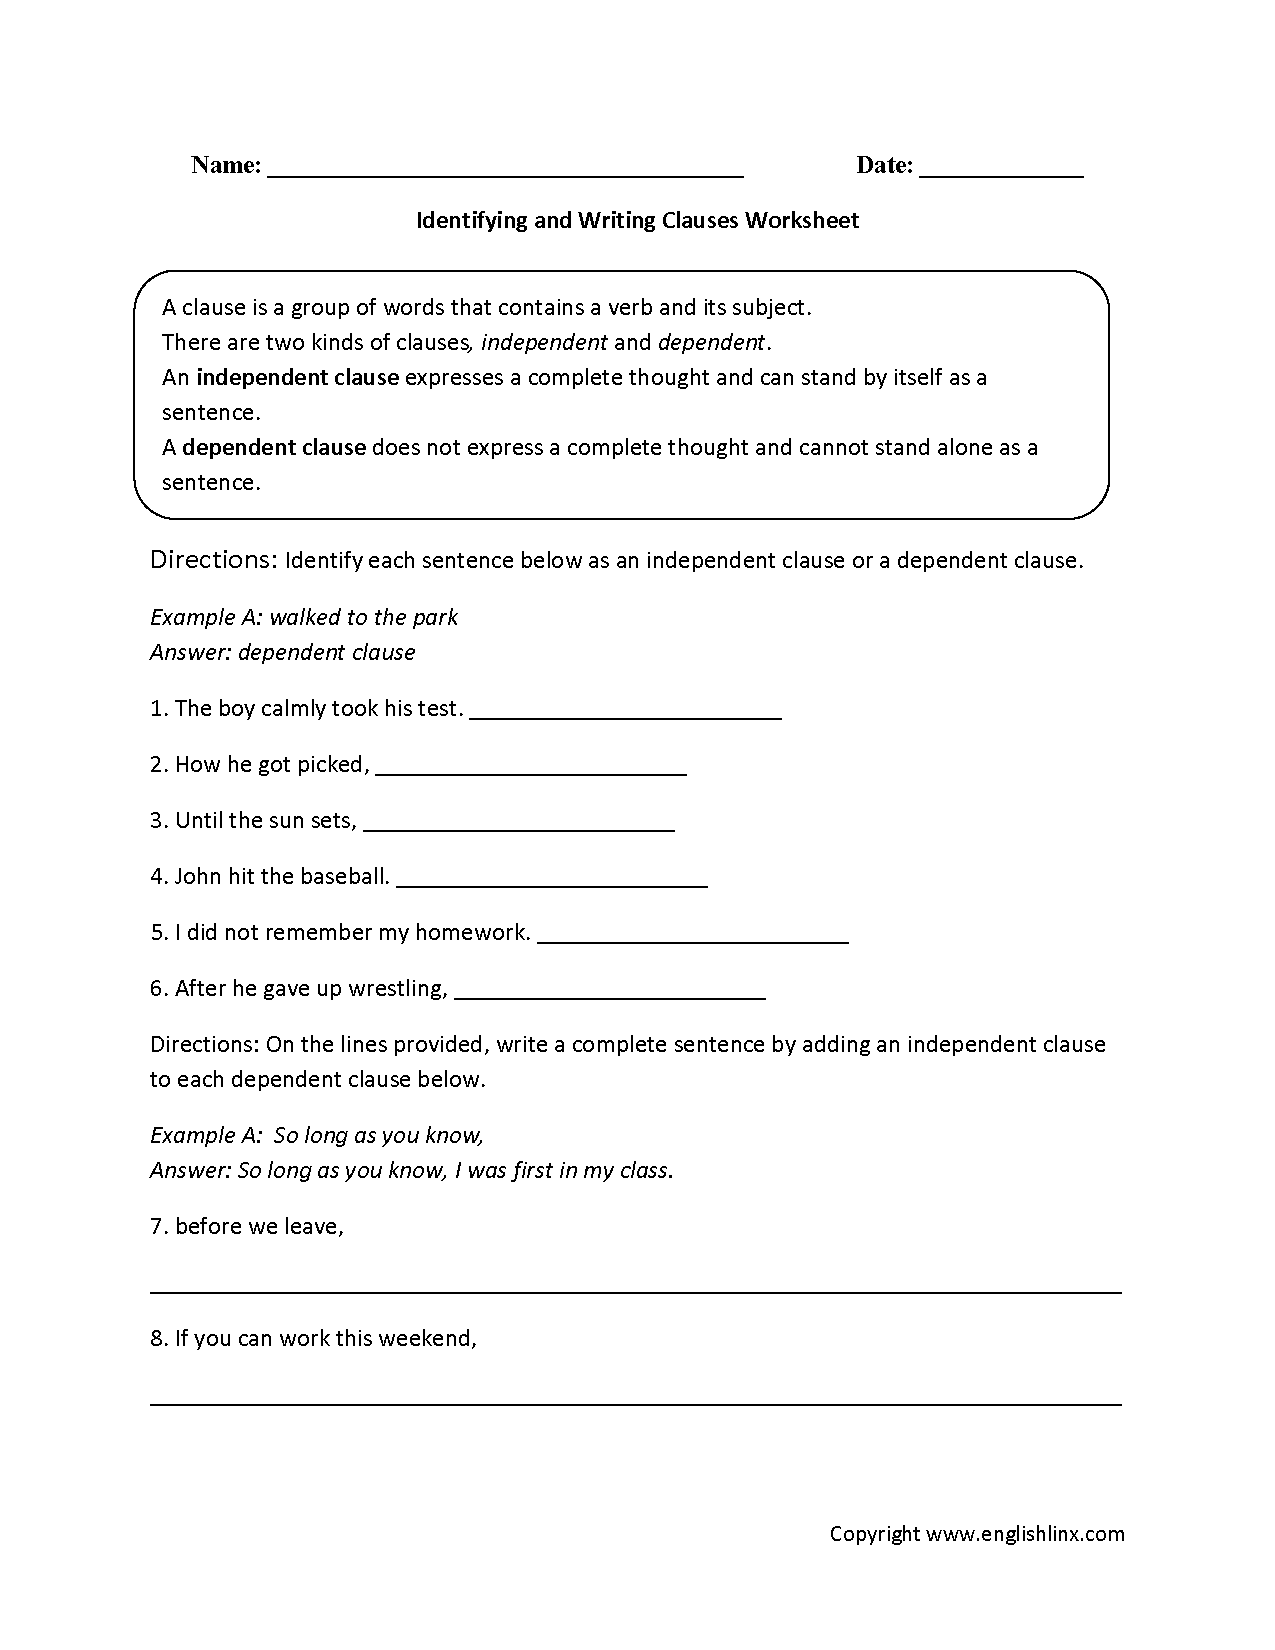 Identifying And Writing Clauses Worksheet